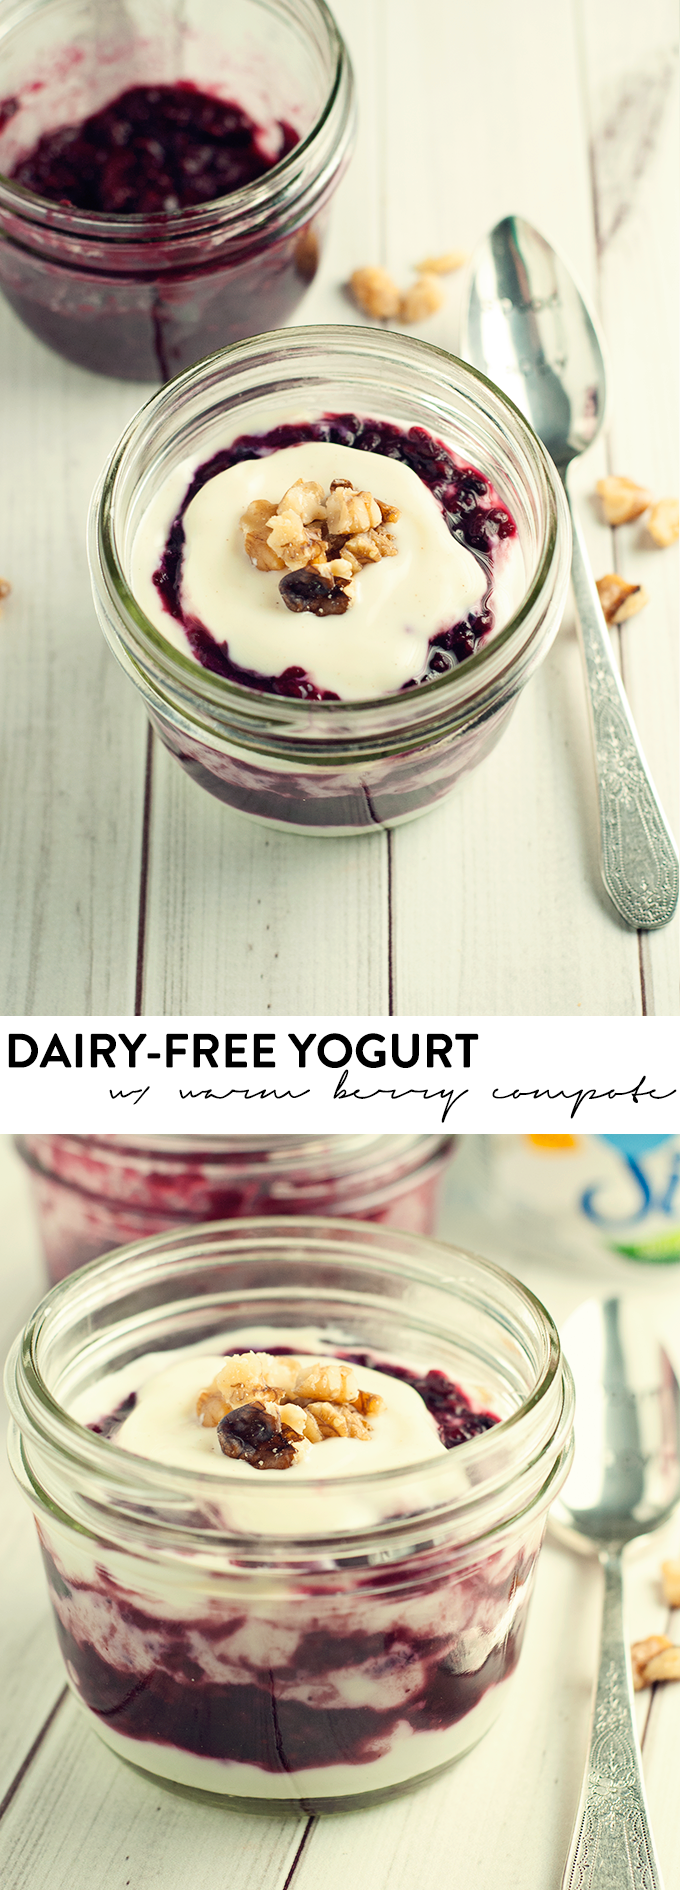 Makeover your breakfast with this delicious dairy-free yogurt with warm berry compote! Sprinkle on some walnuts for crunch!